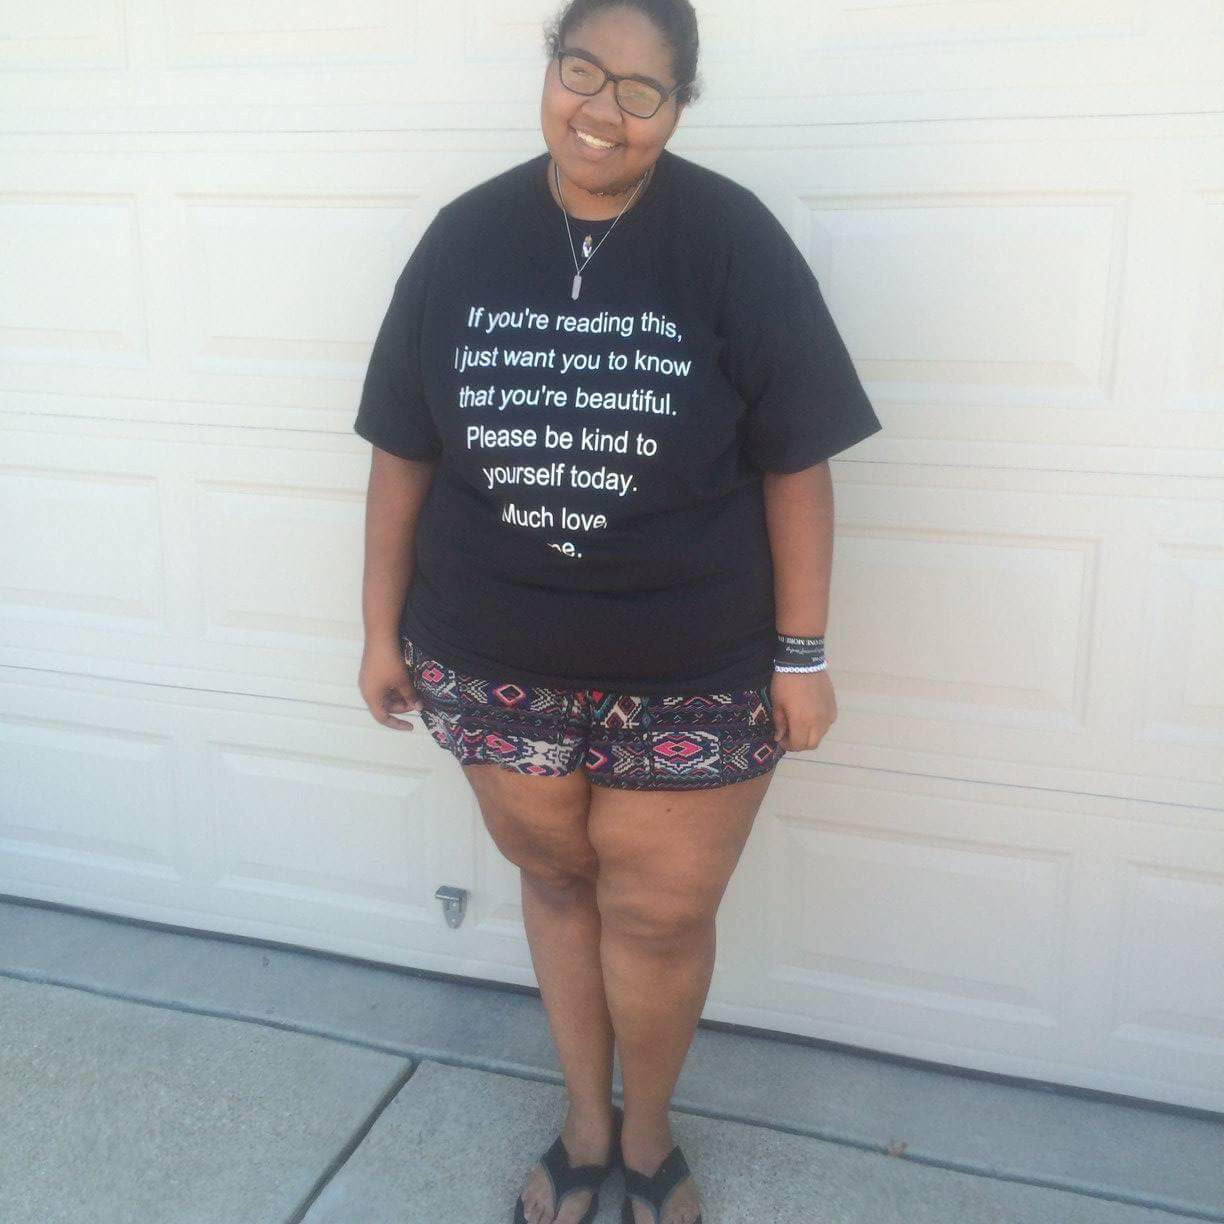 Self Harm Prevention/ Self Love Awareness T-shirt ♥ - Underlying Beauty - 3